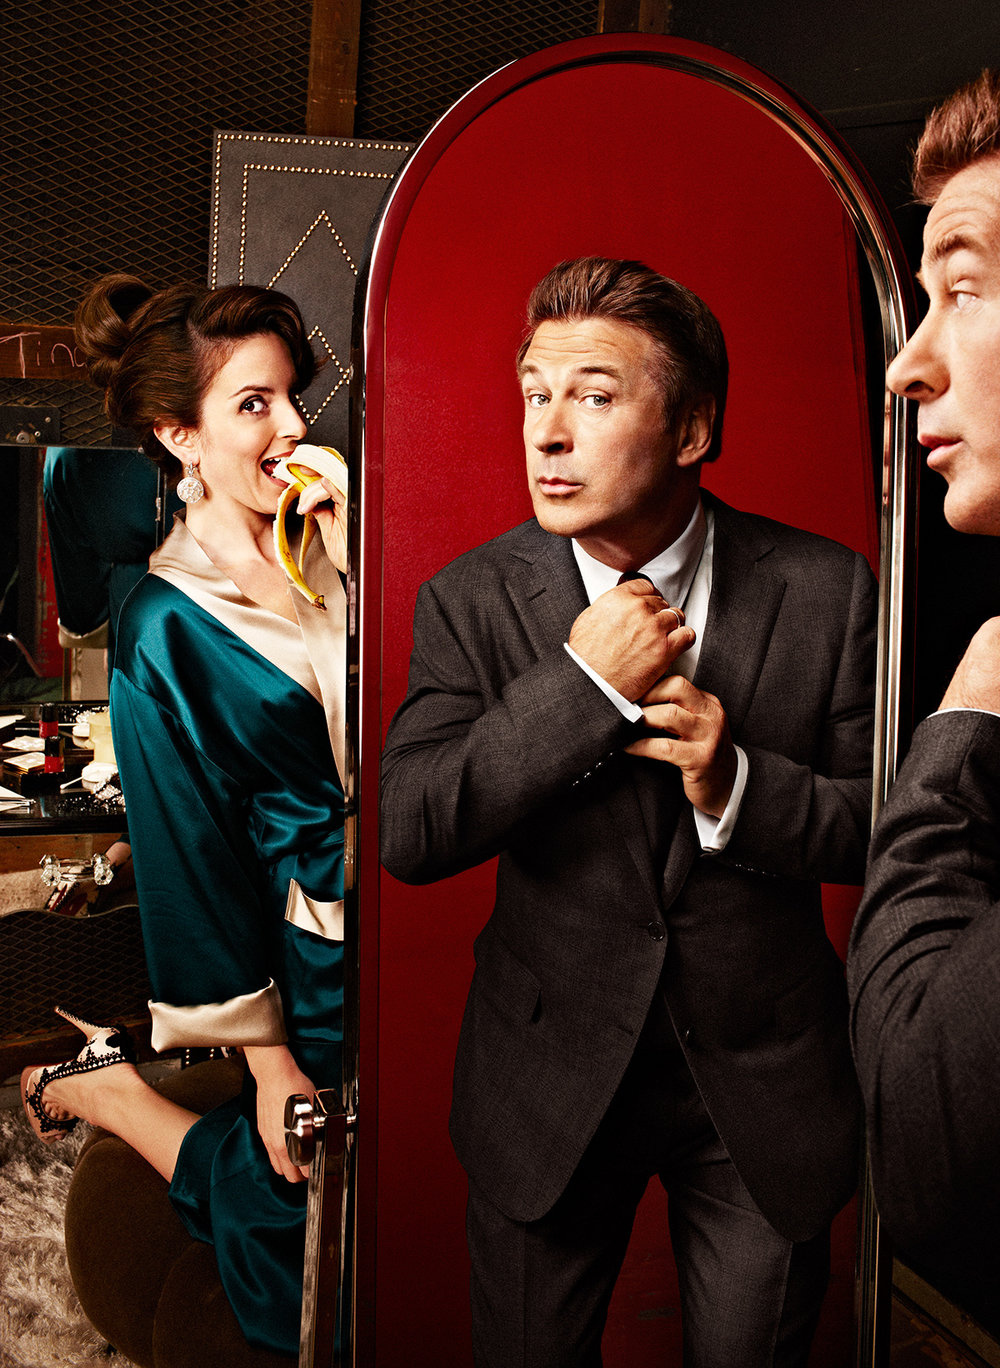 Alec Baldwin and Tina Fey - New York City